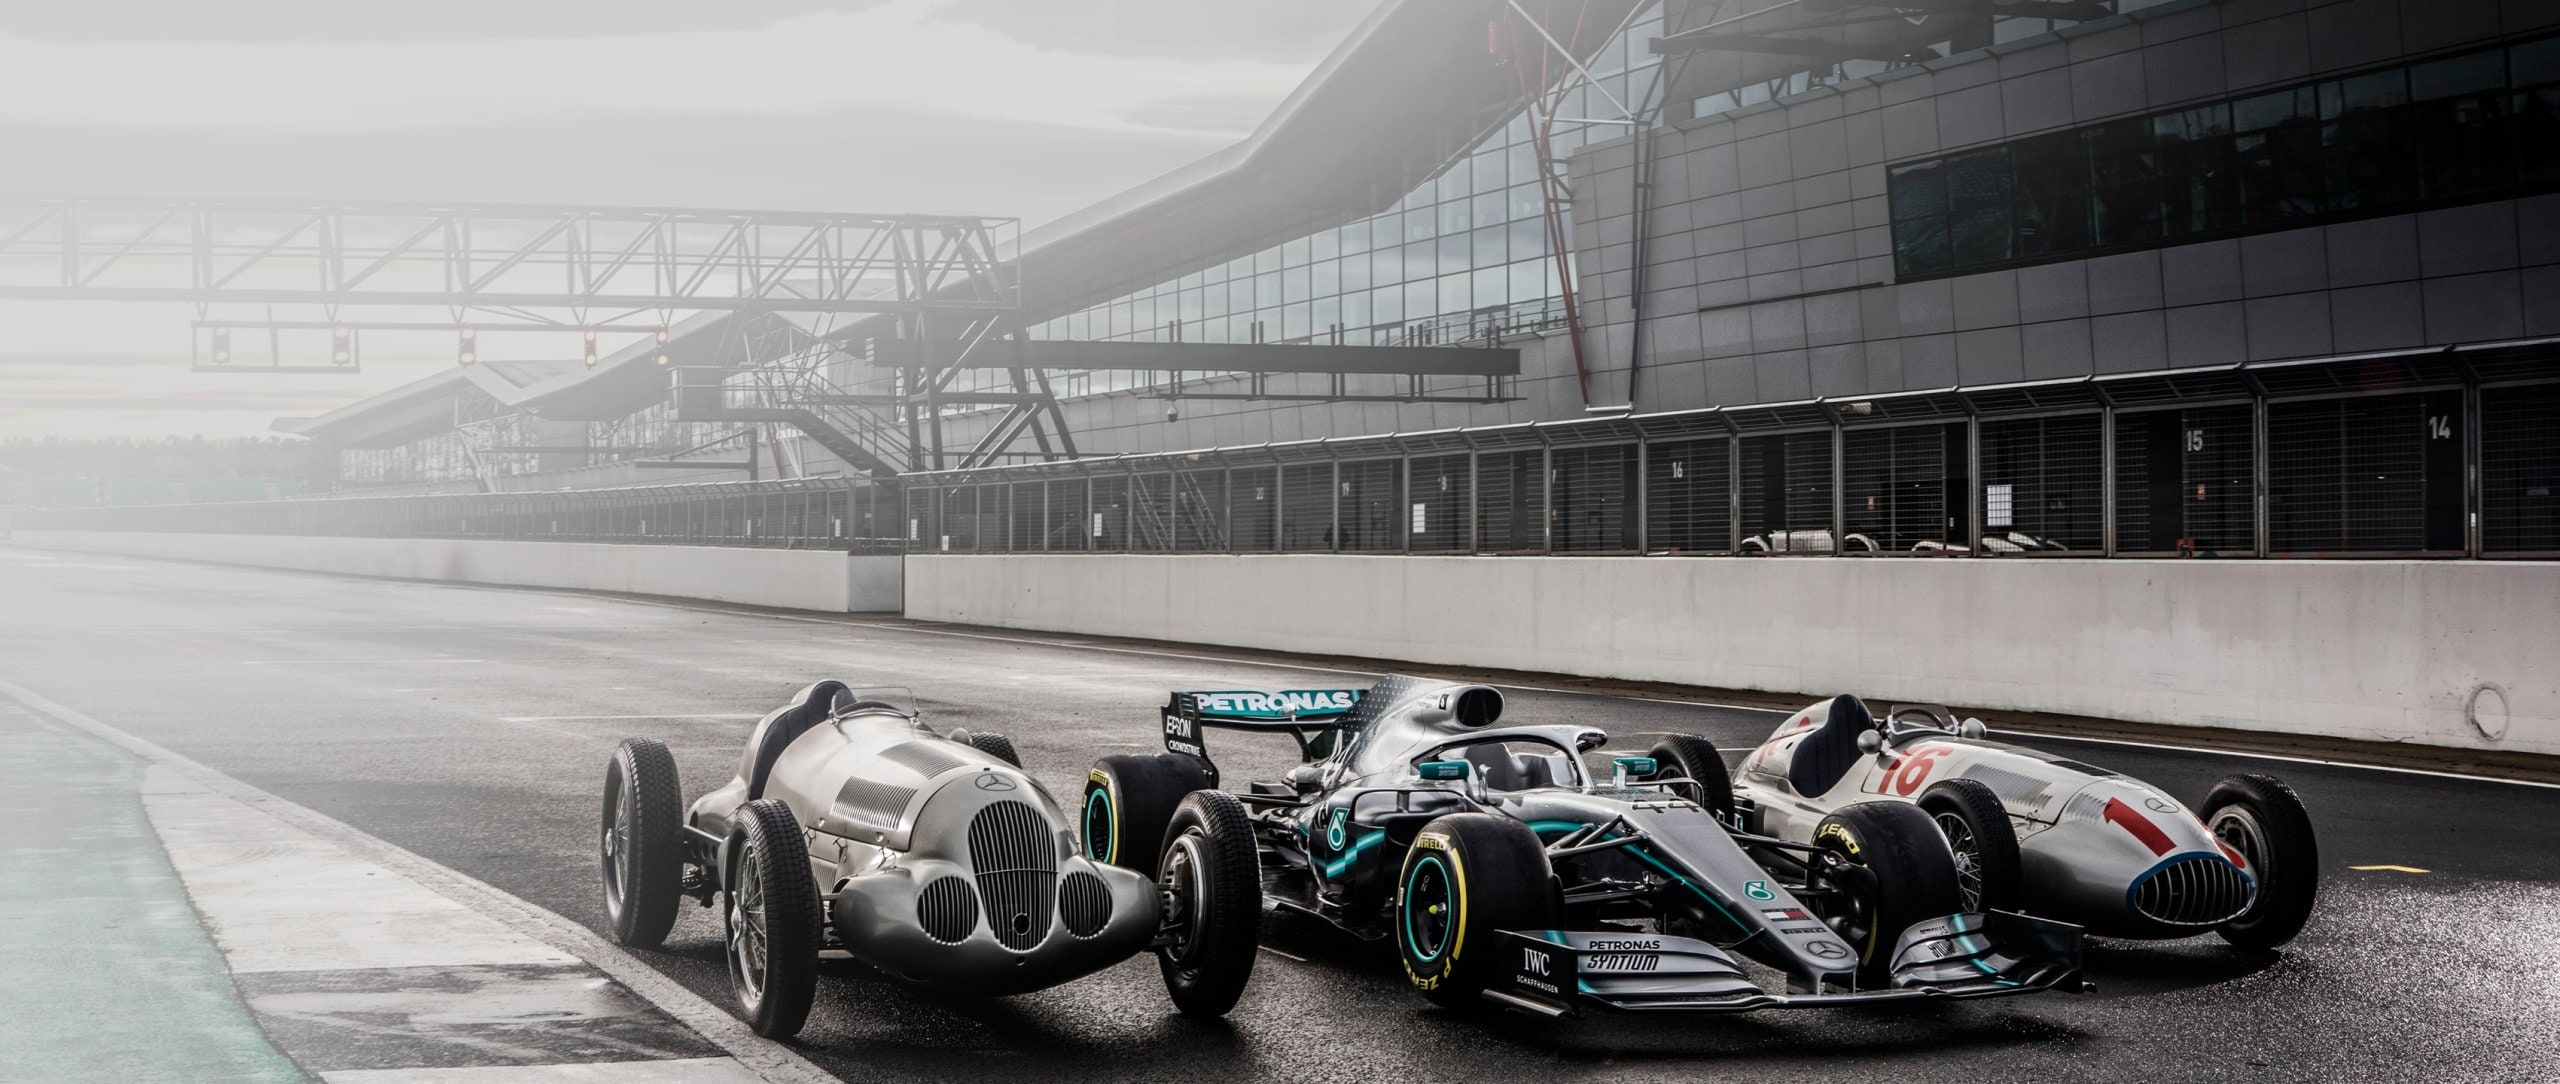 125 years of motorsports at Mercedes-Benz: Parade of stars in Silverstone.